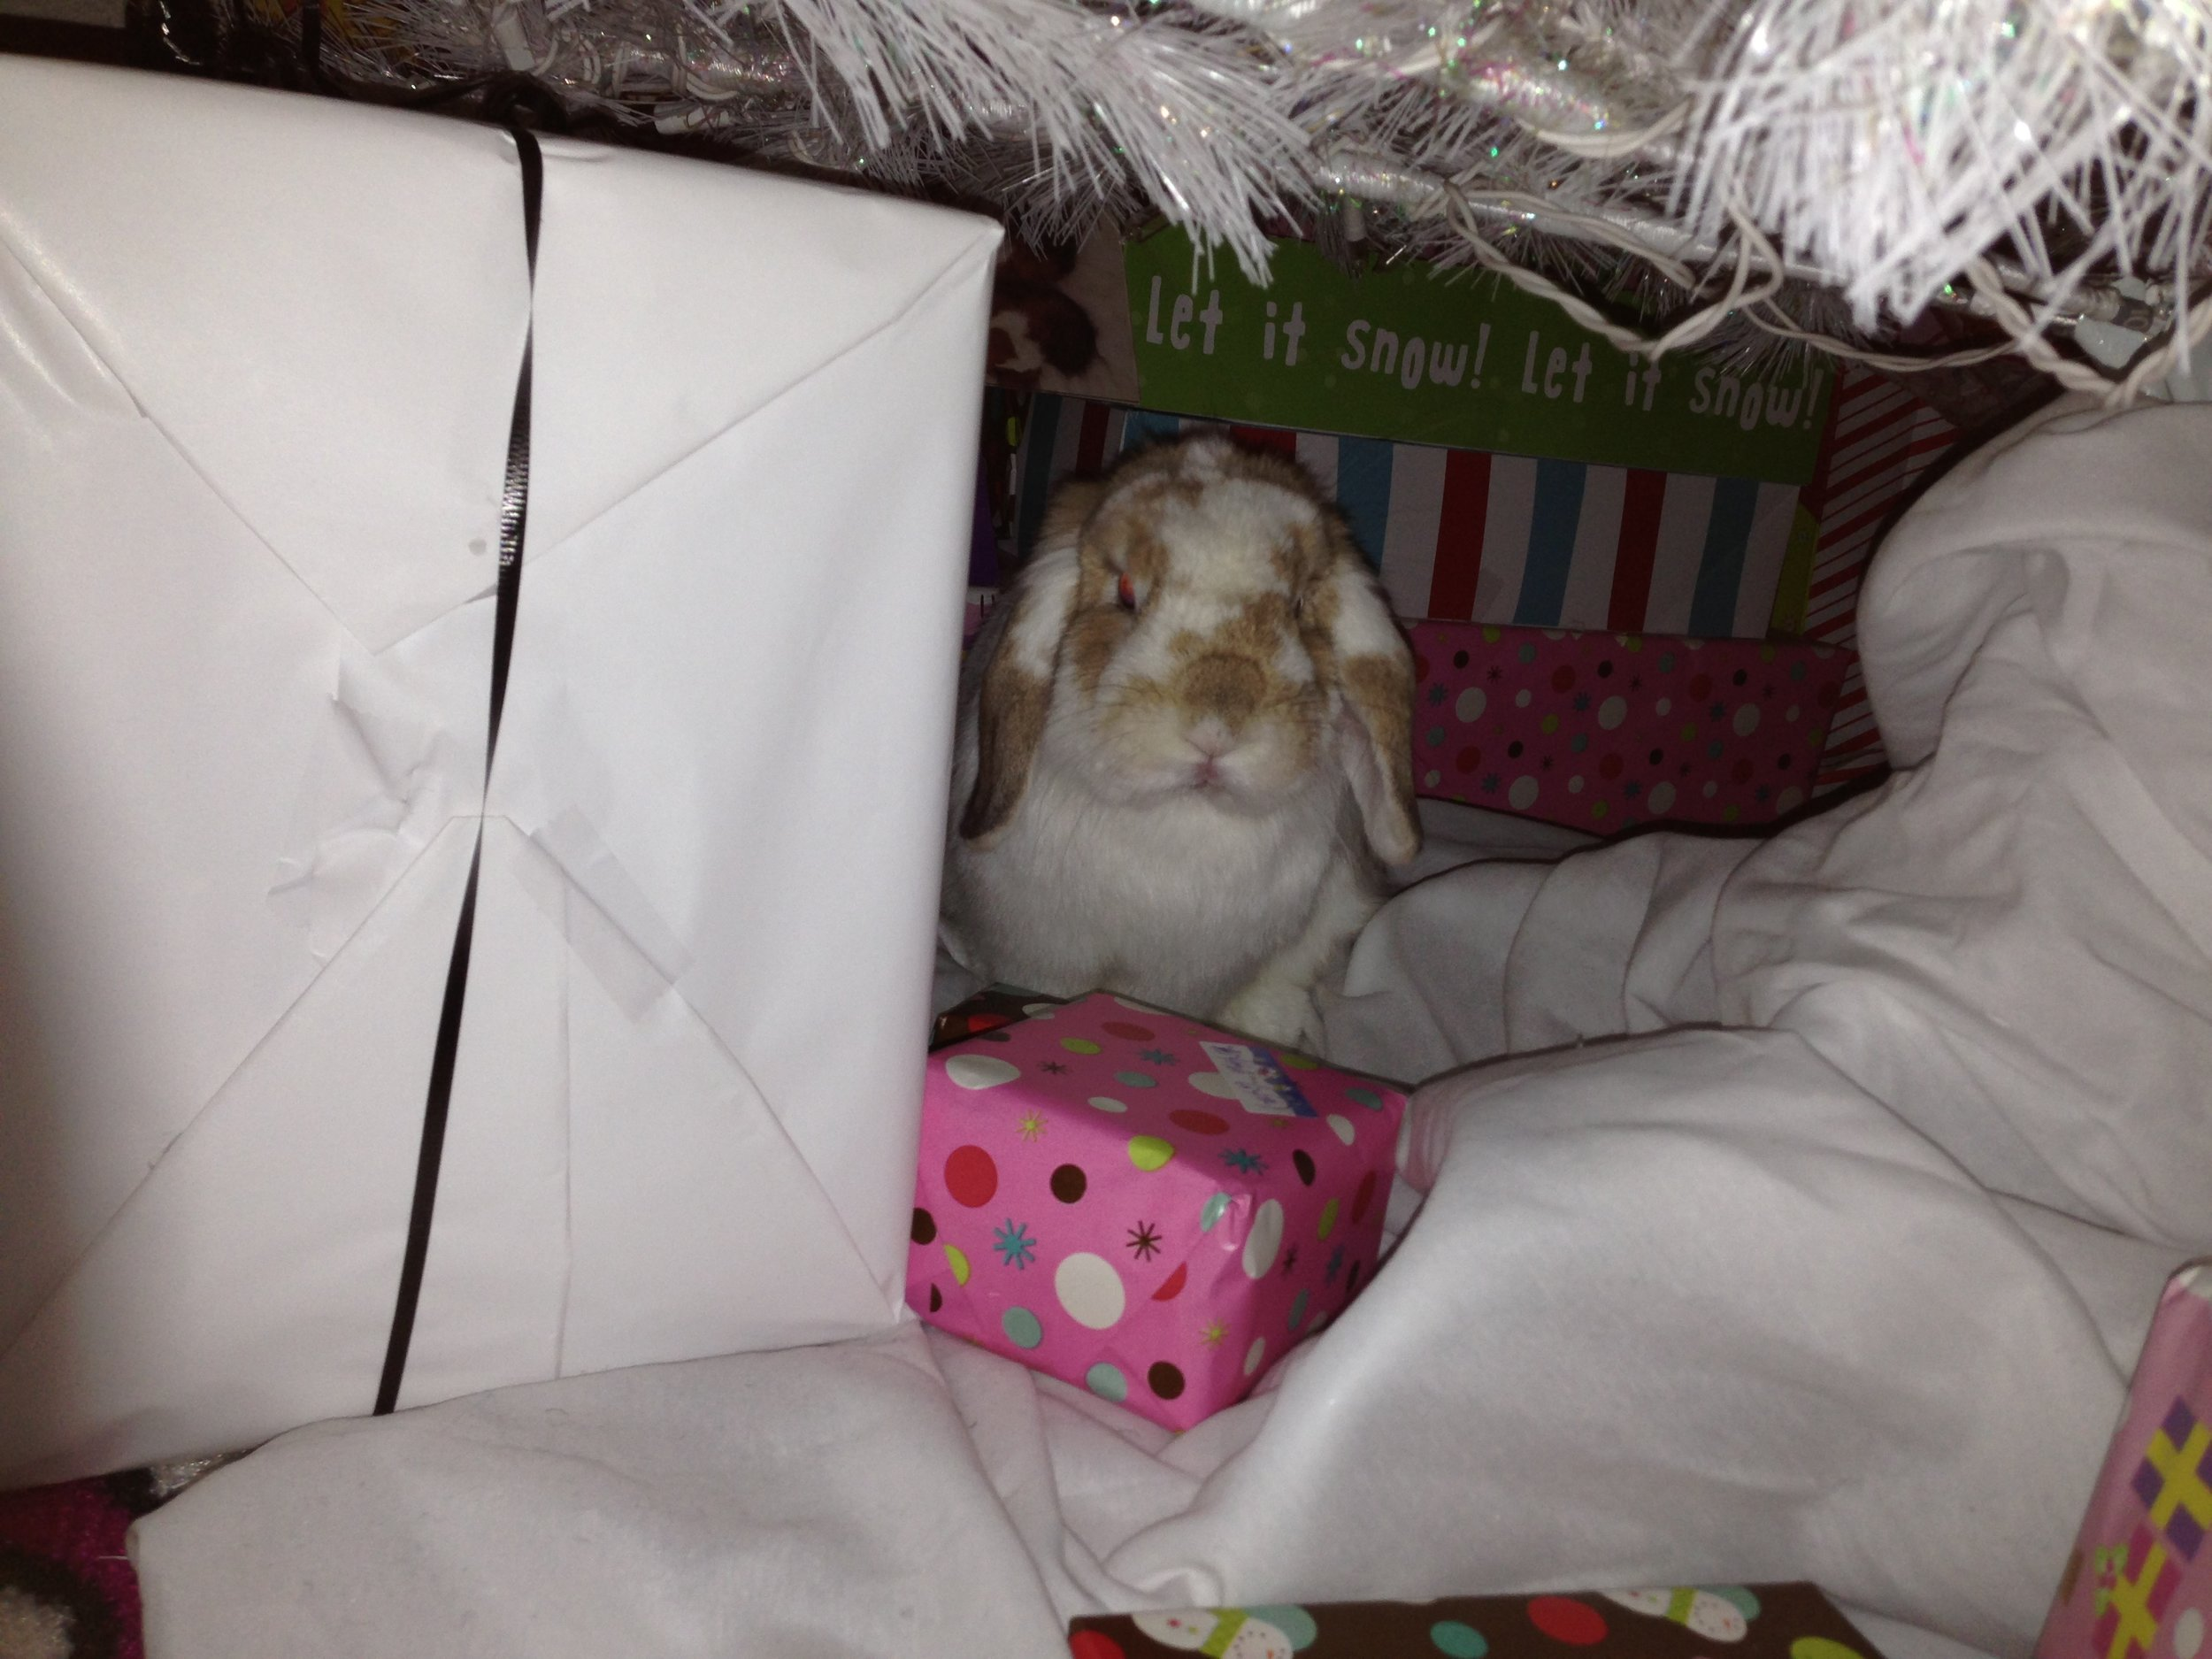 Enough Pictures, Human. Let's Open These Presents!